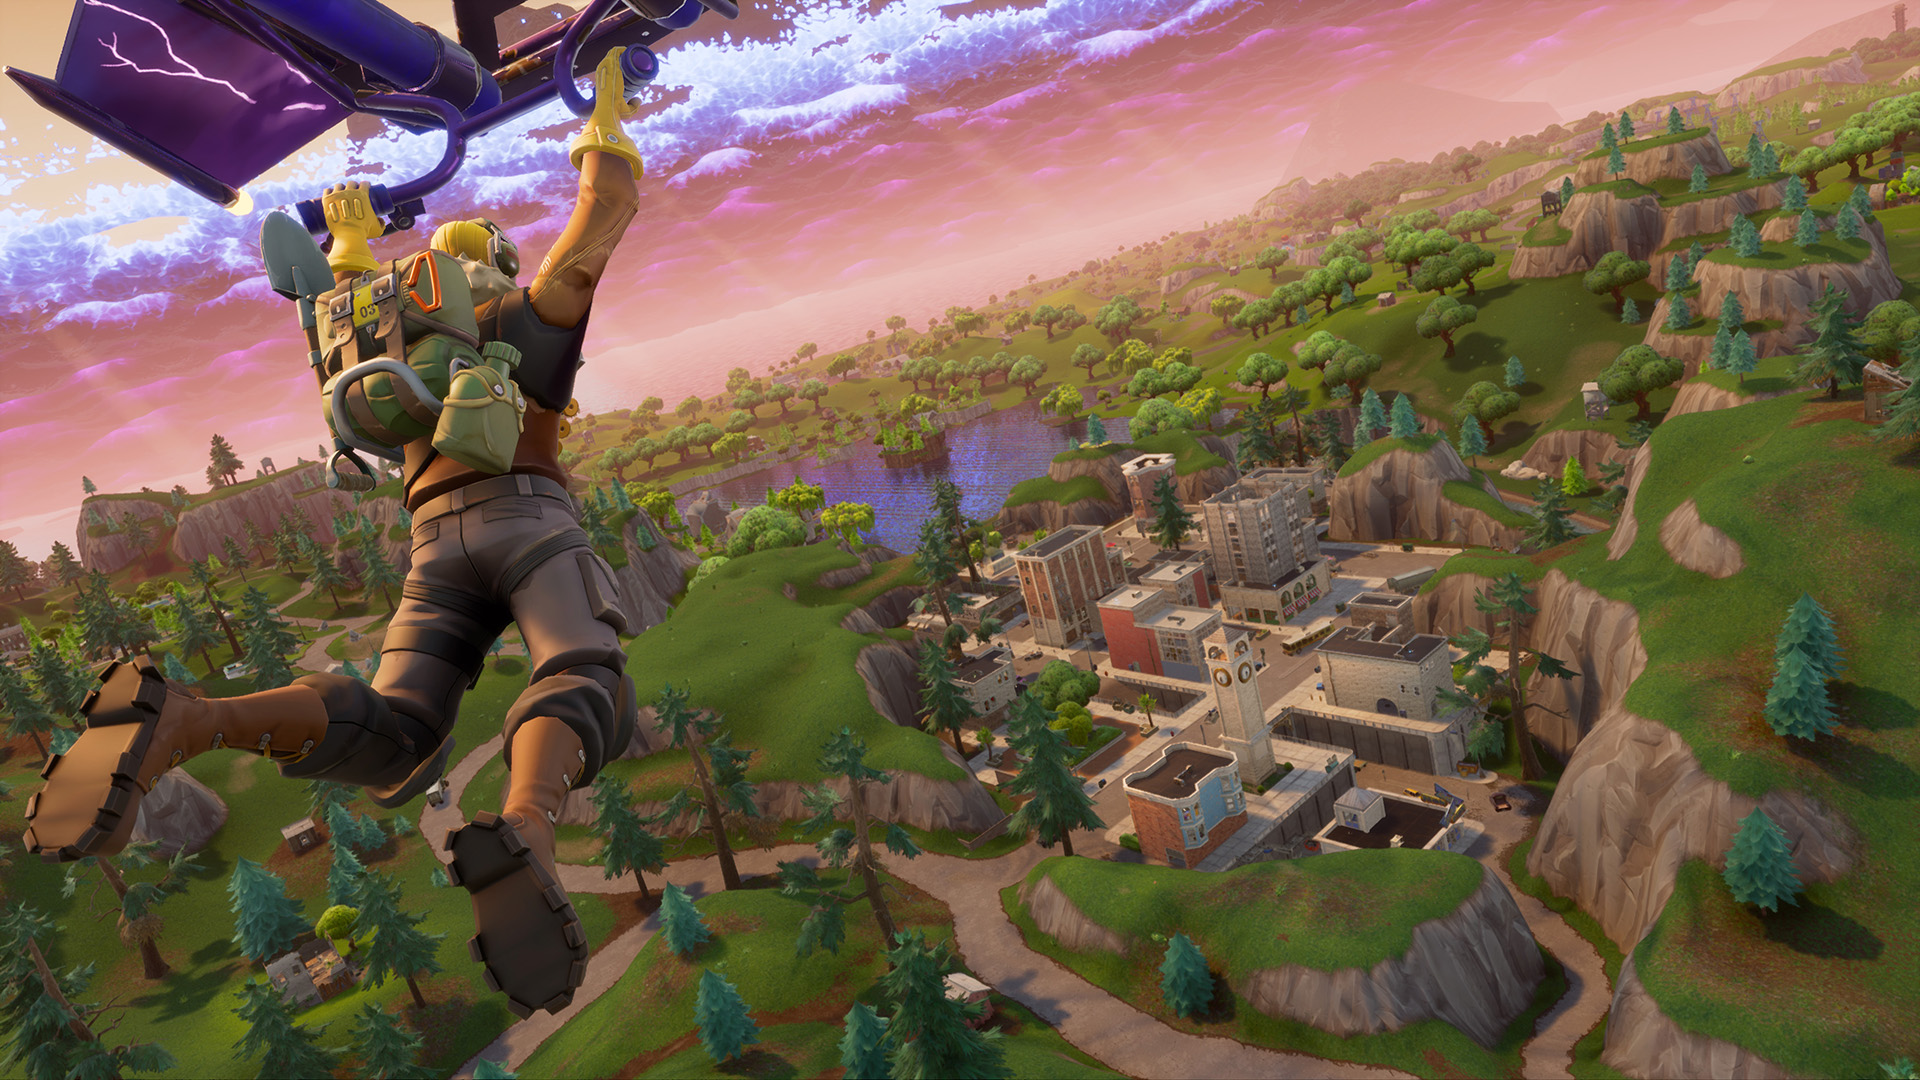 8 Secret New Map Locations Chest Spots In Fortnite Battle Royale You